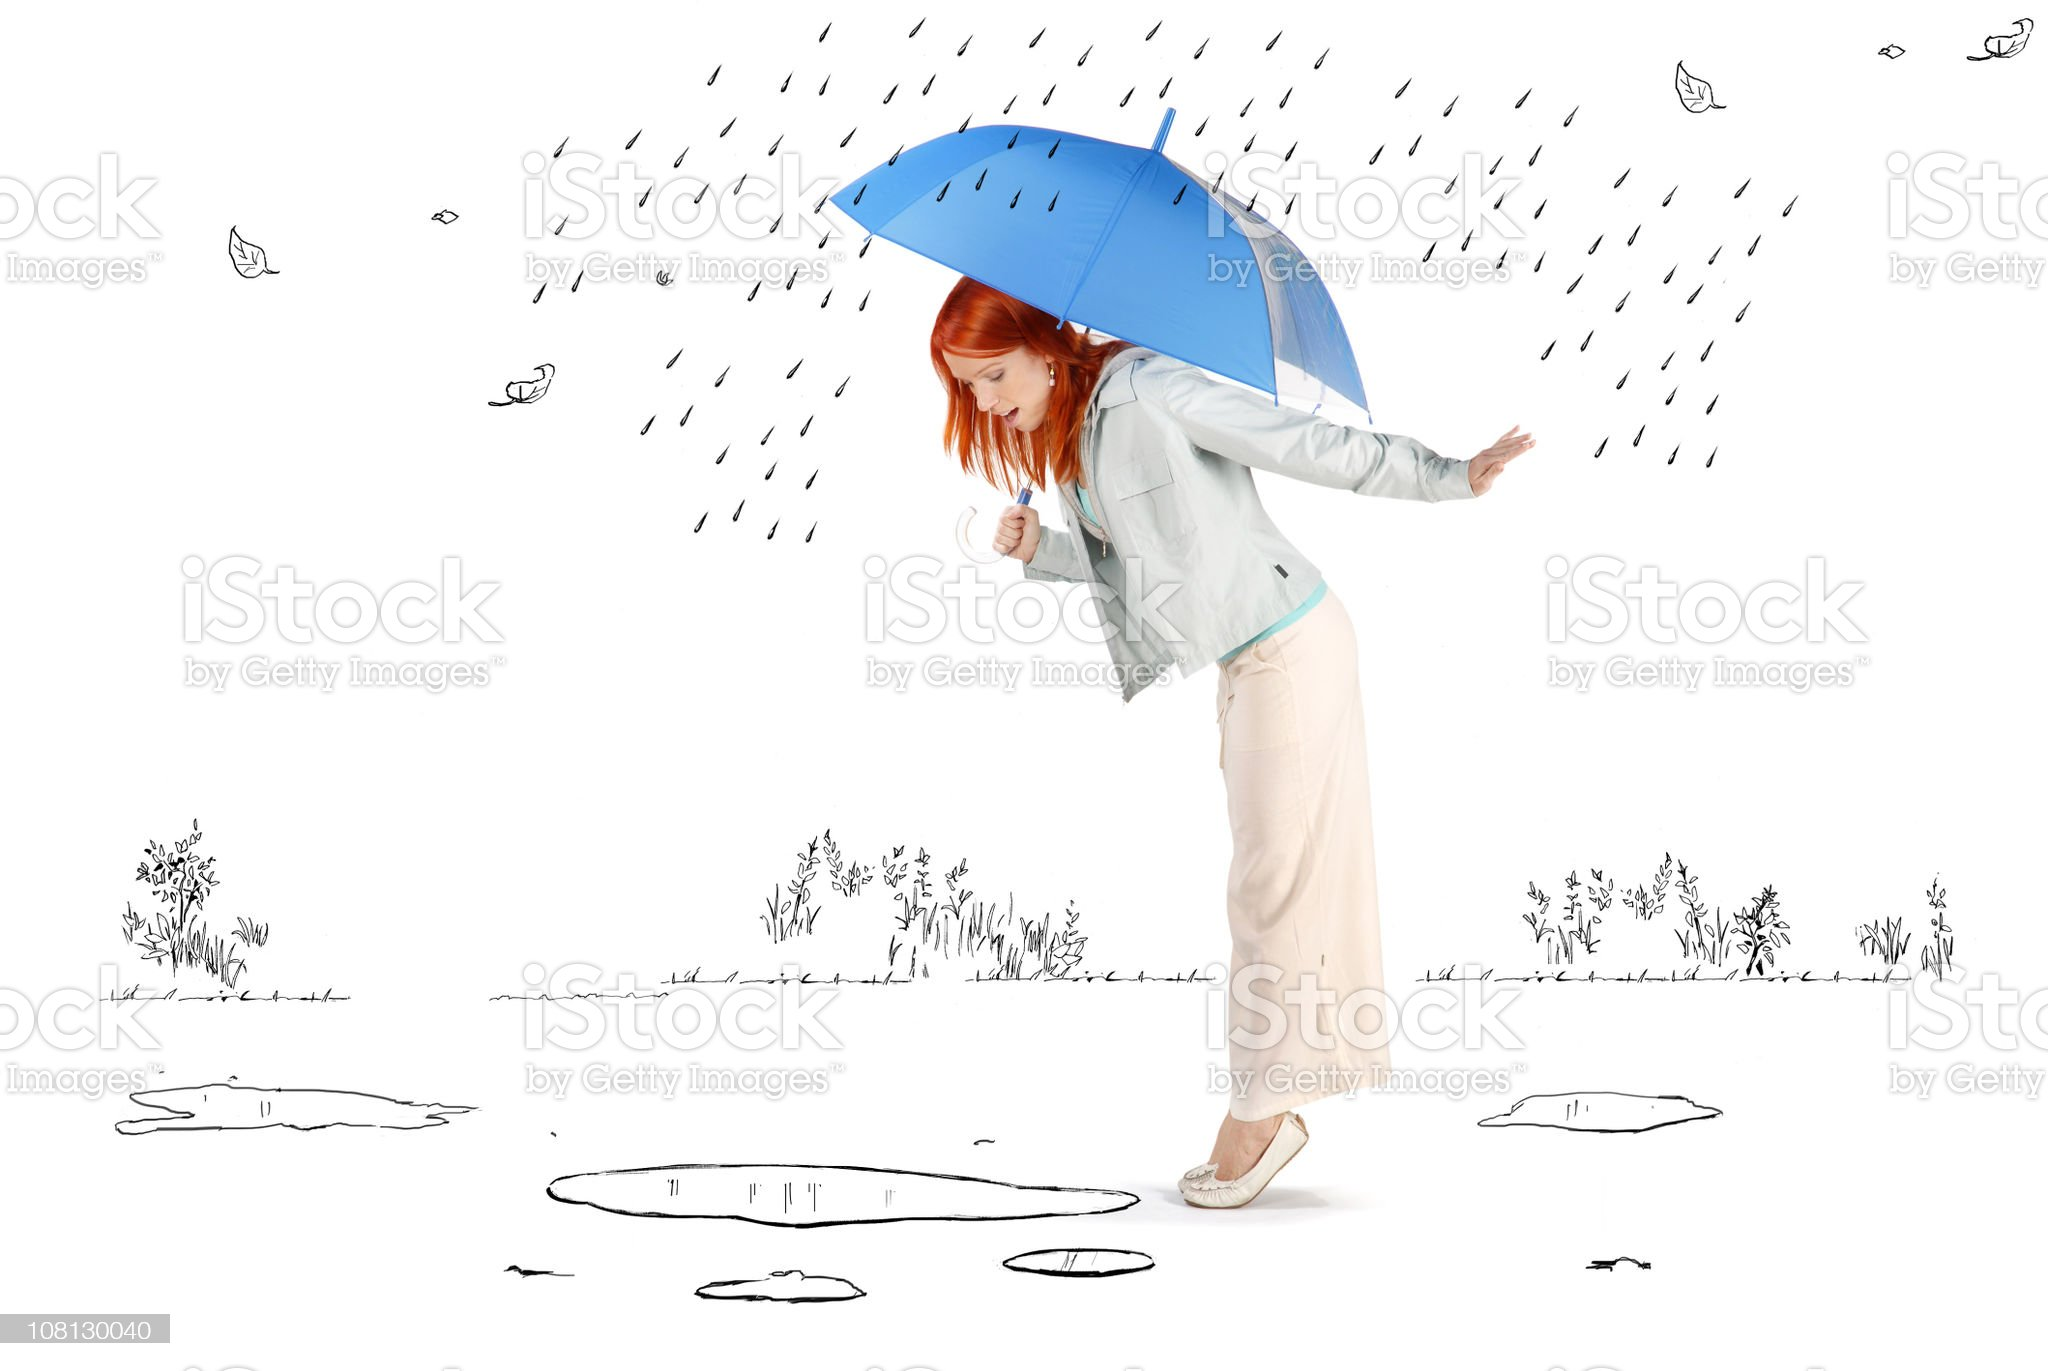 Young Woman Standing in Cartoon Rain and Puddles royalty-free stock vector art